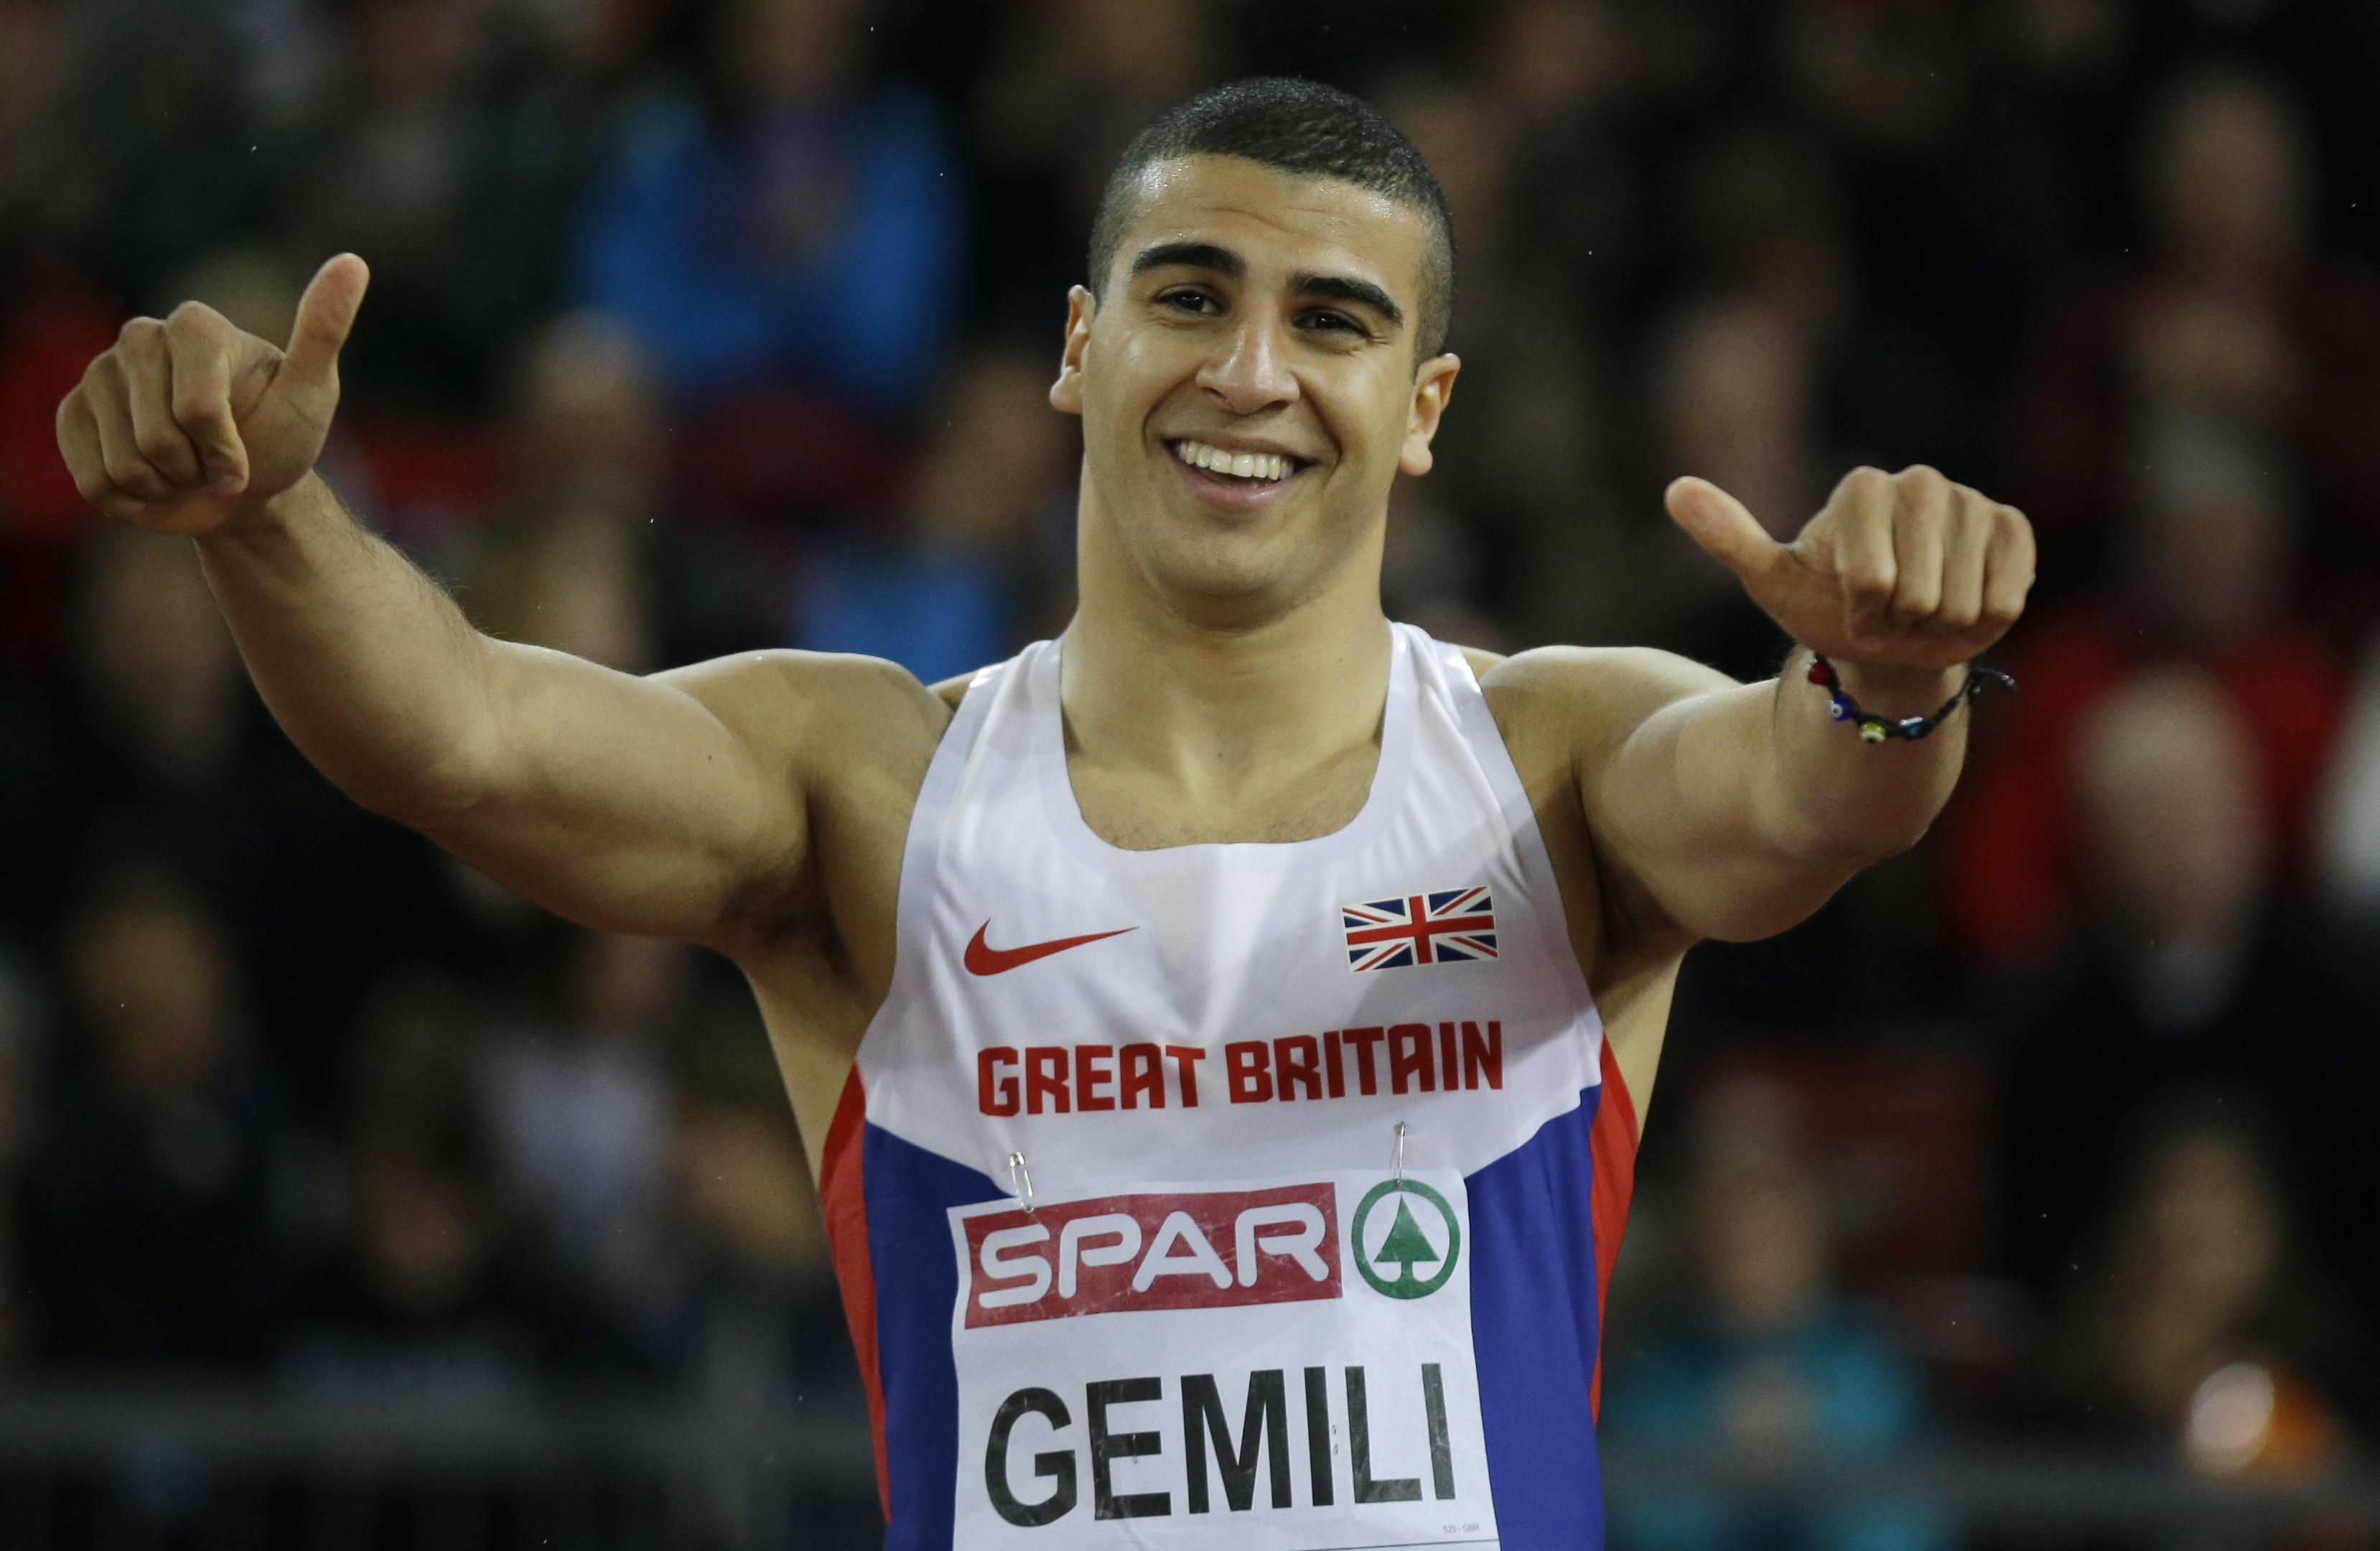 Adam Gemili has been one of Britain's top sprinters in recent years